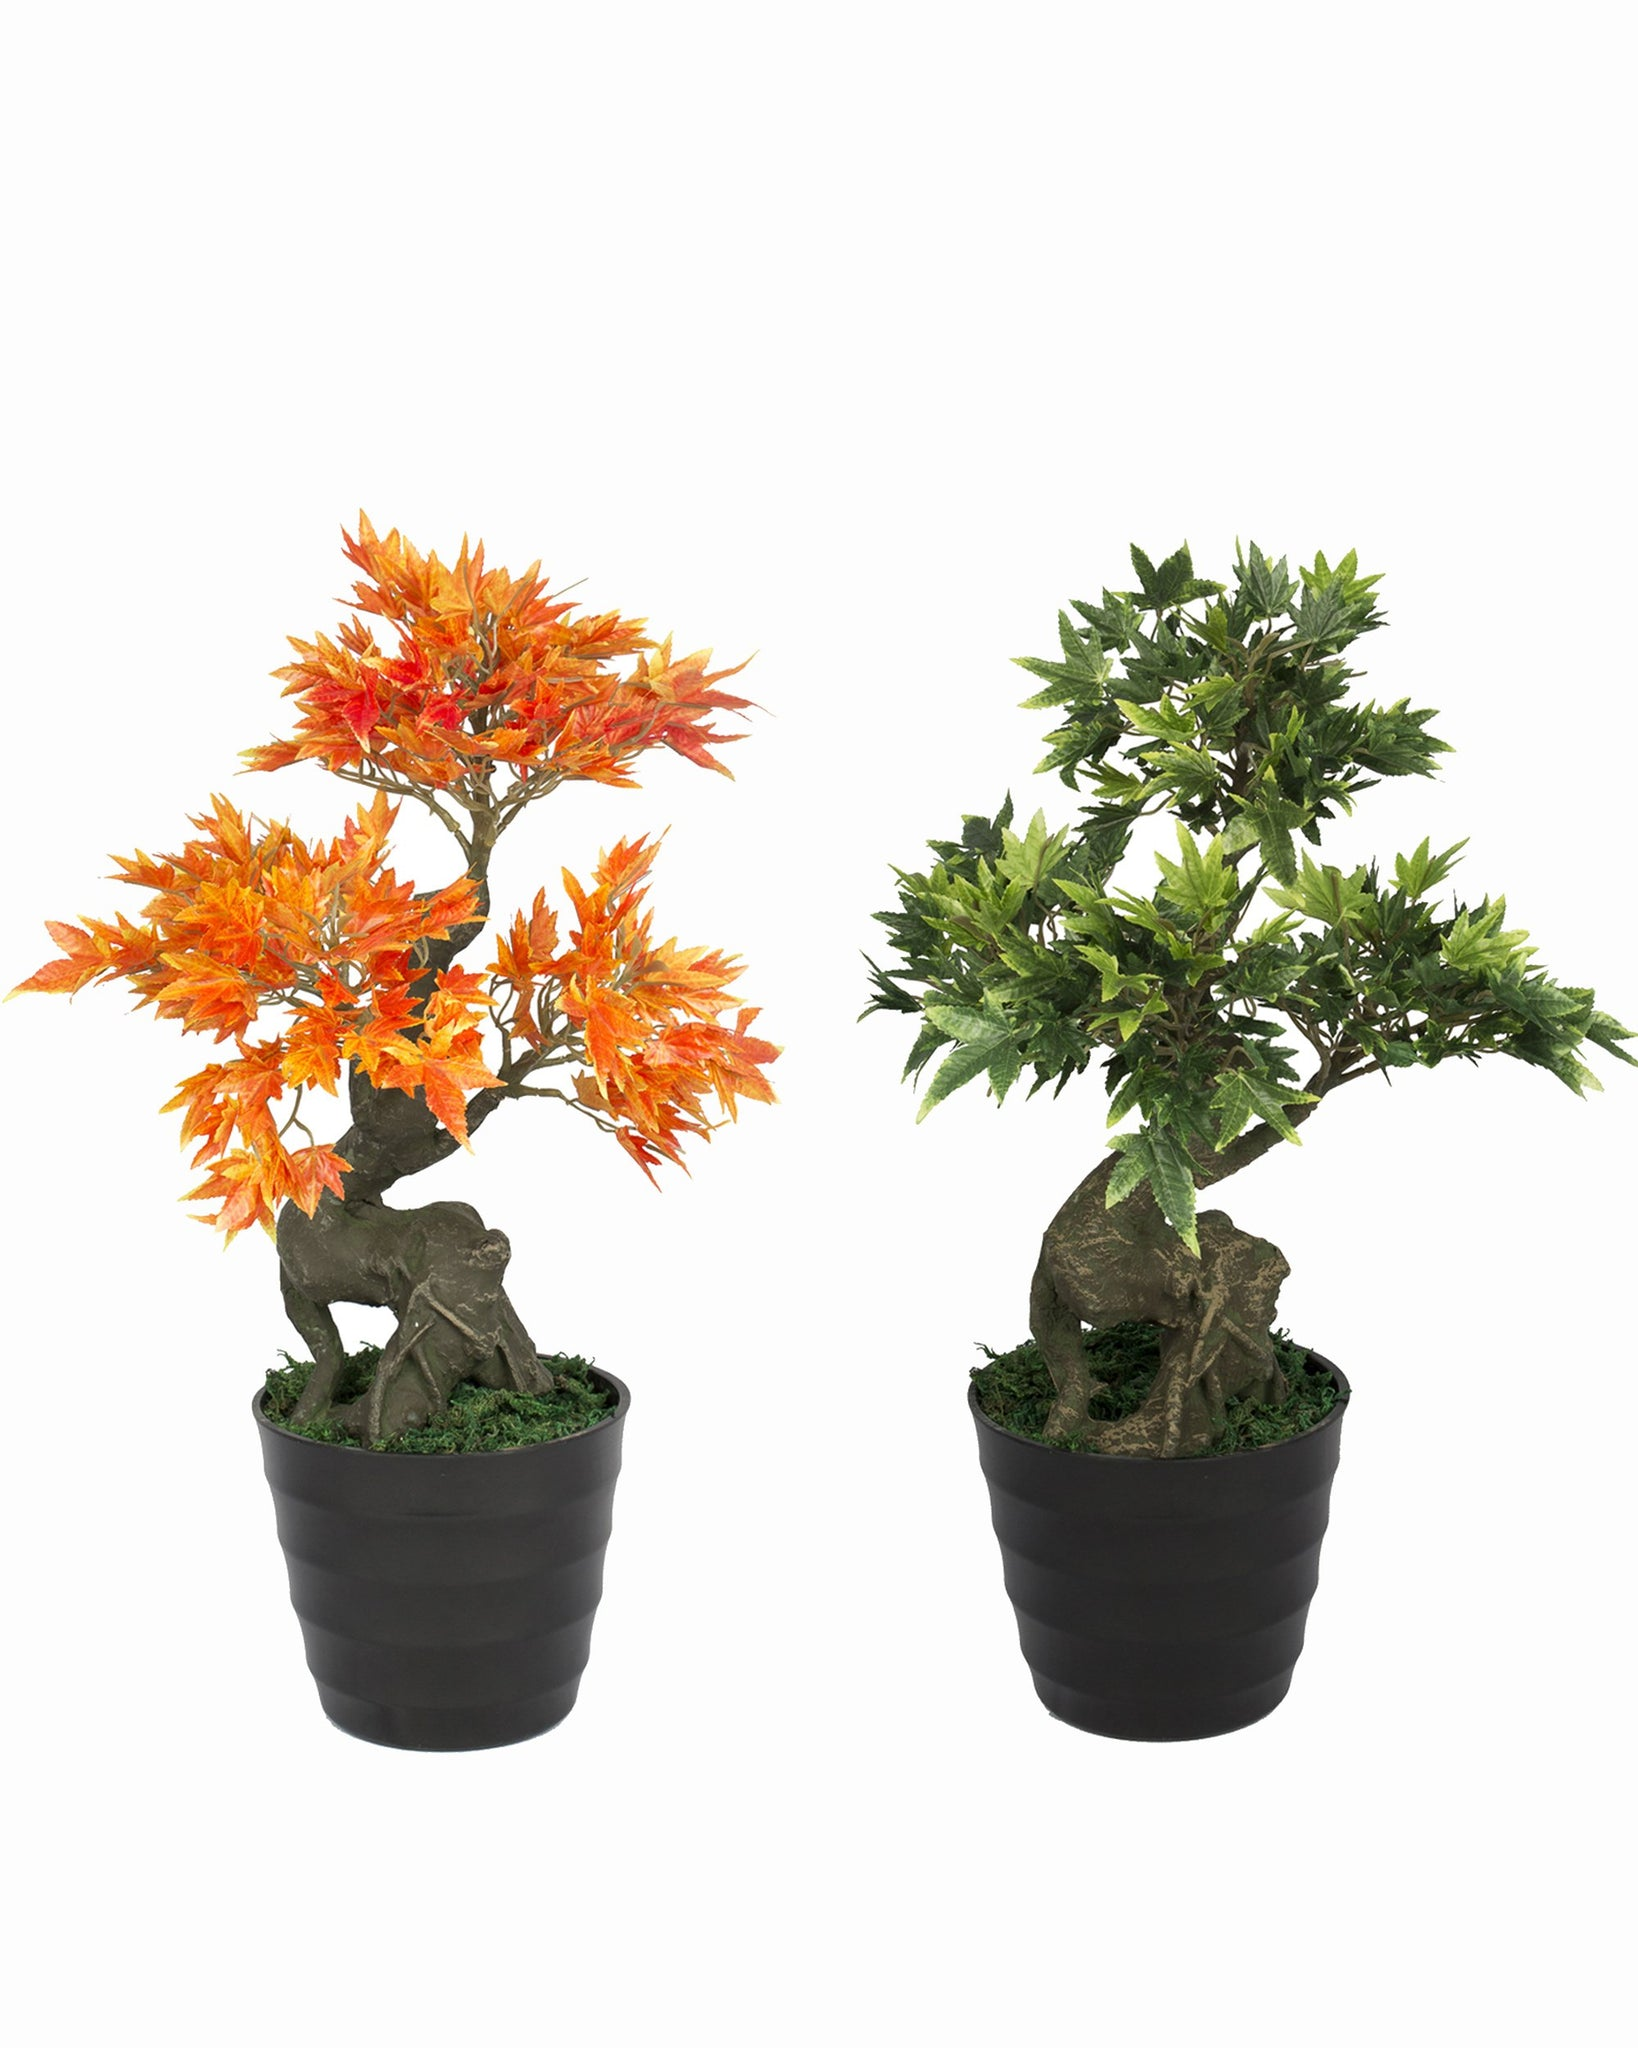 Maple Artificial Plant with Pot  (42.5 cm, Multi color) - Artificial Flowers & Plants - PolliNation